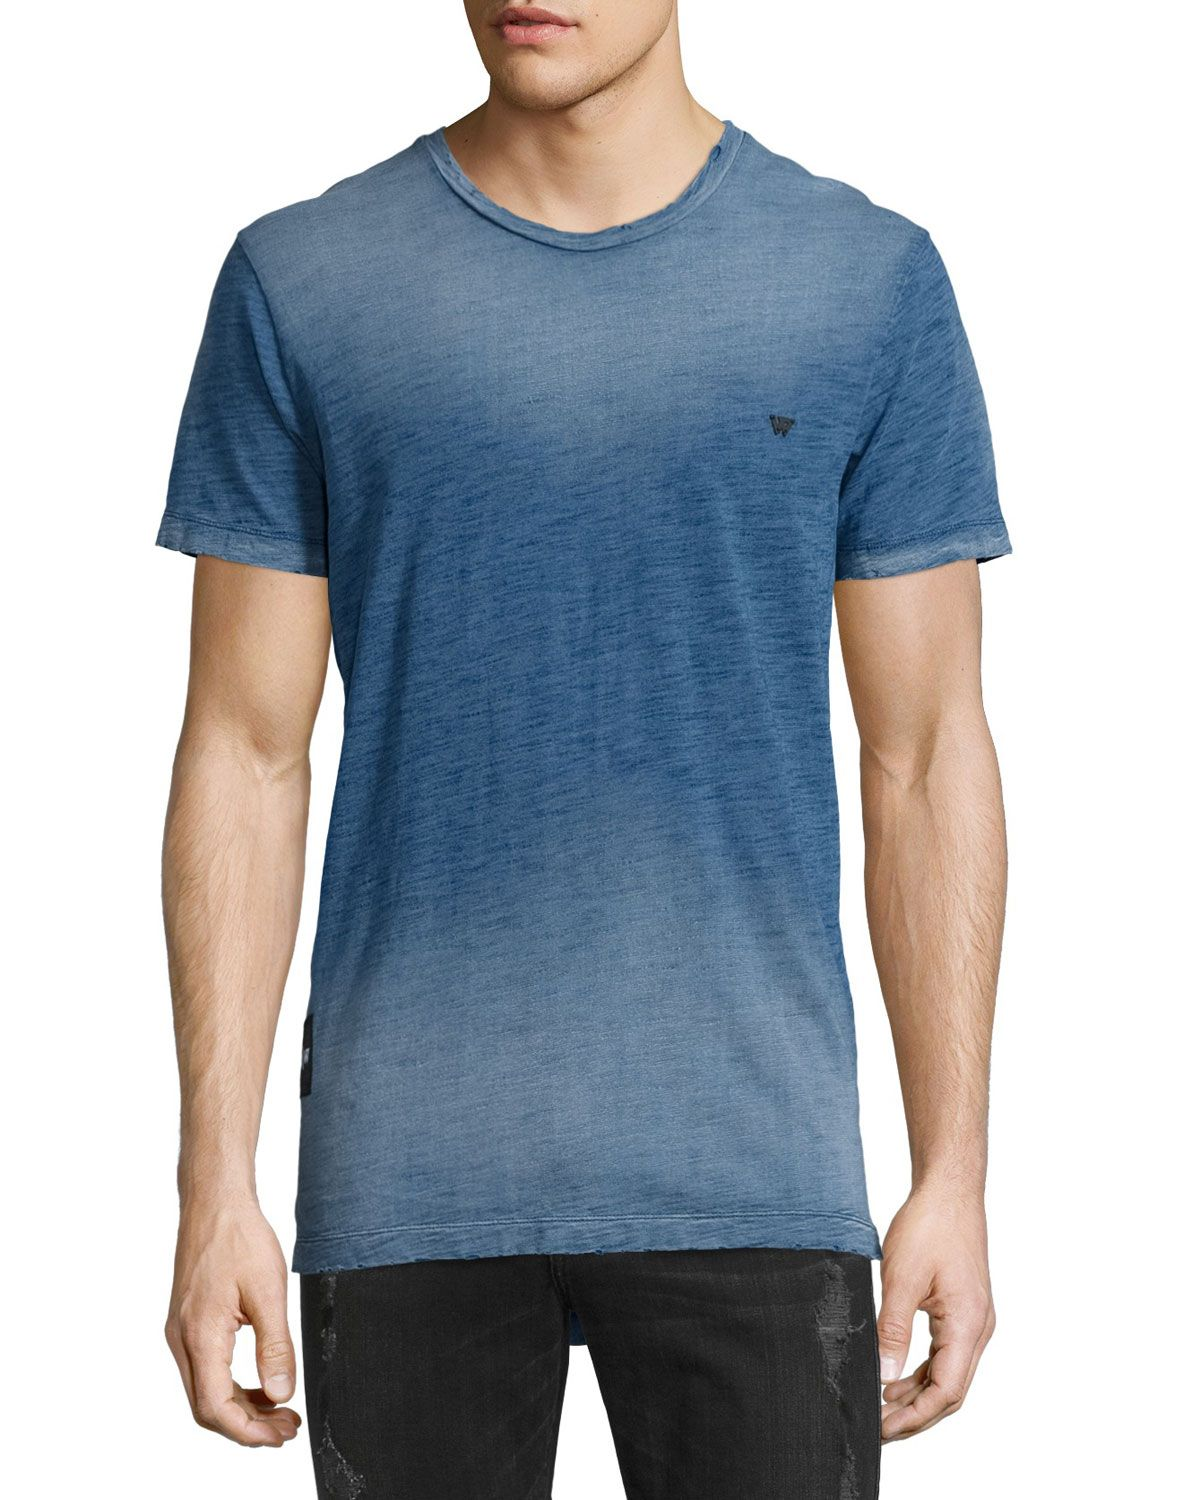 d0533f48918ae3 Russell Westbrook Collection Elongated Short-Sleeve Slub T-Shirt ...